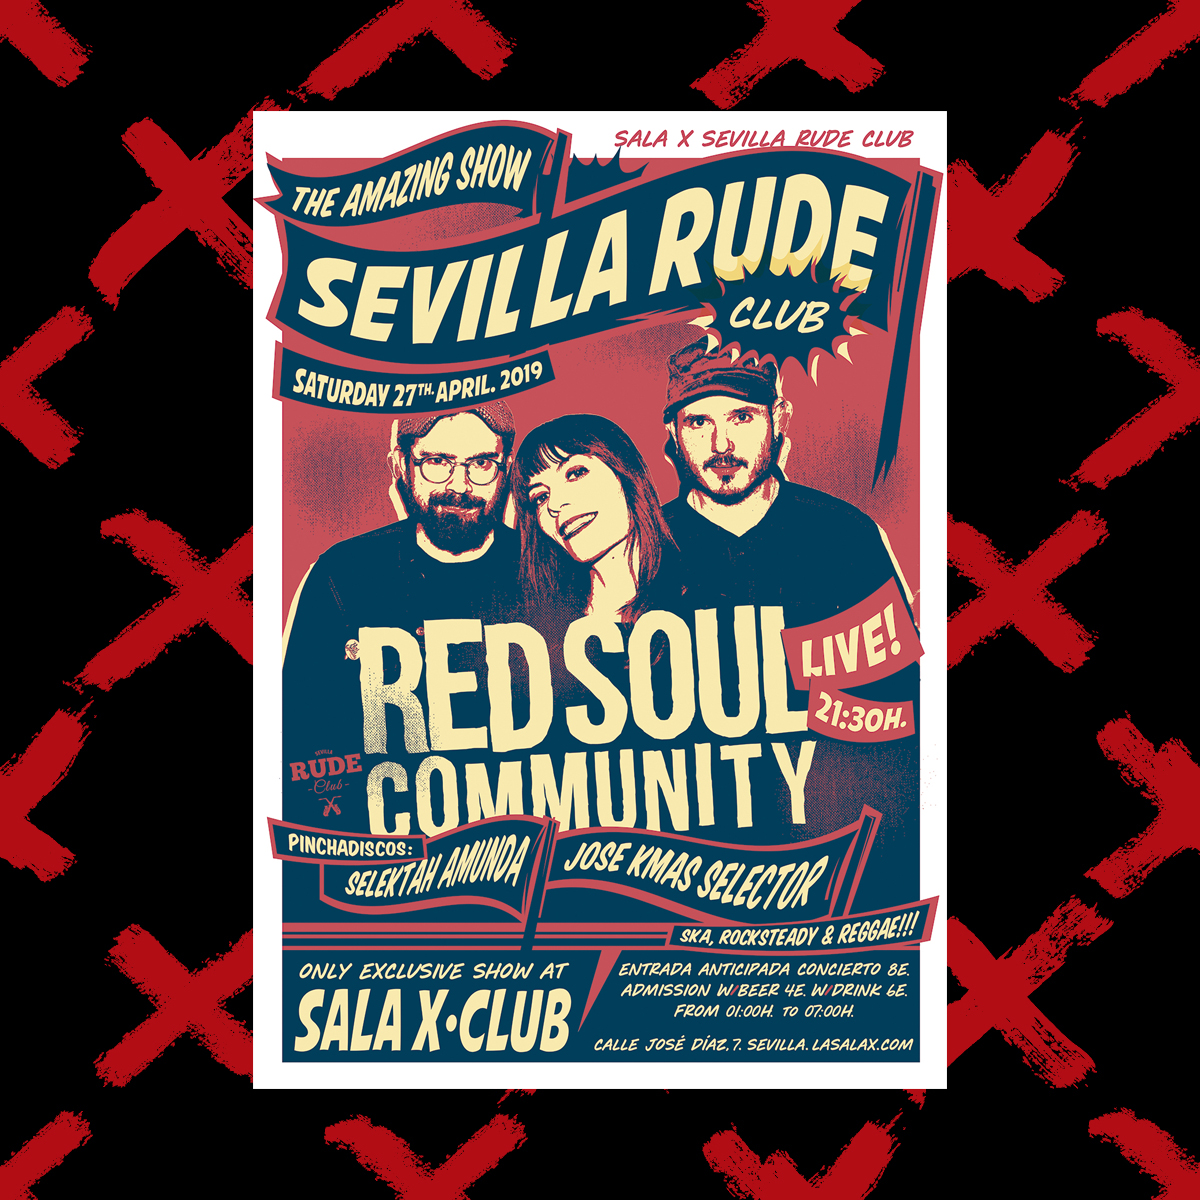 Sevilla Rude Club abril instagram